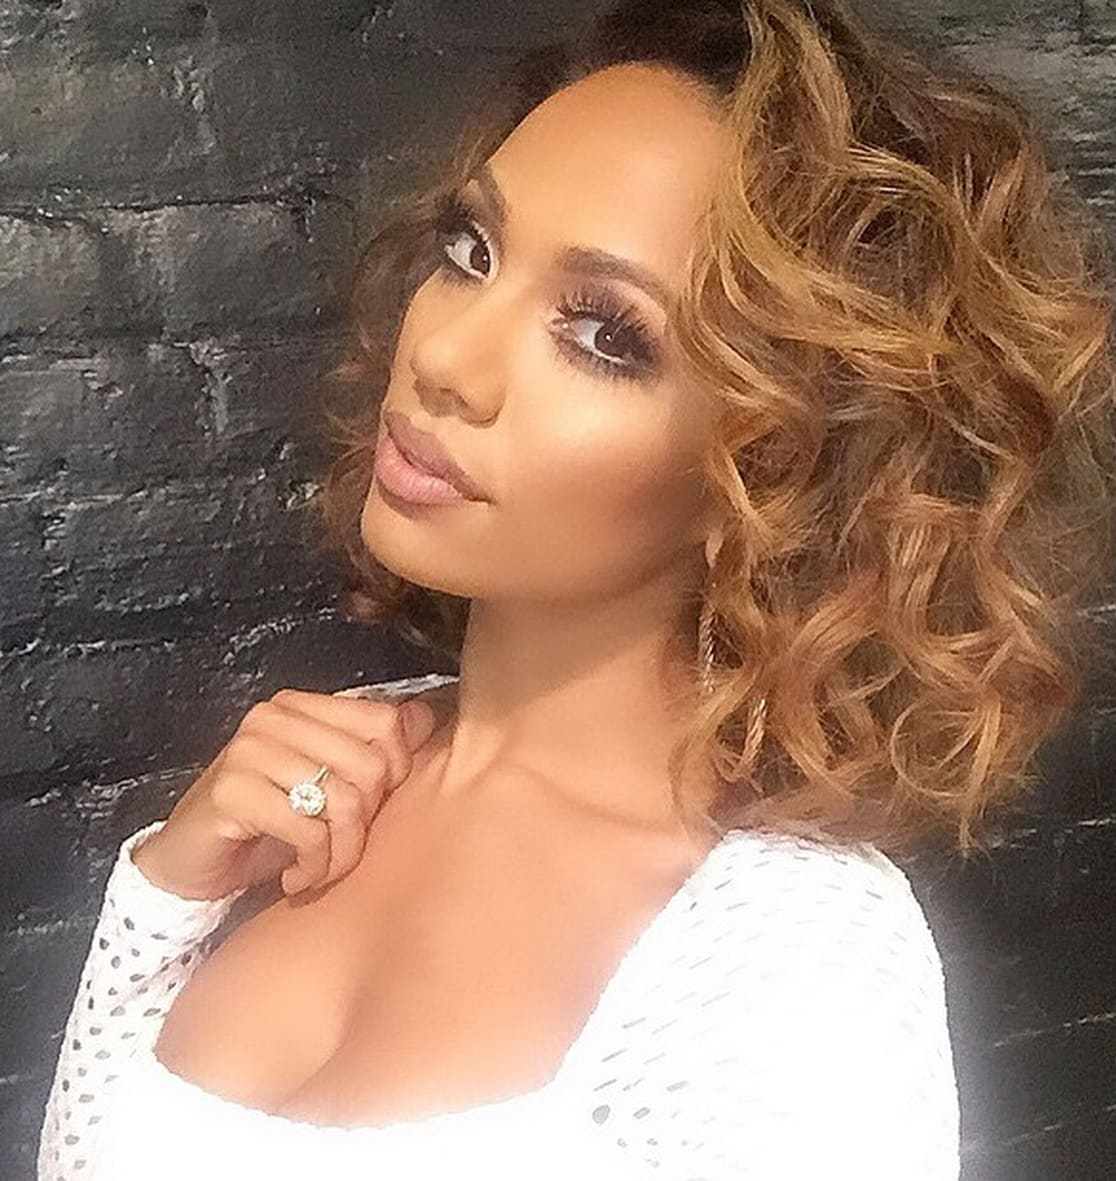 Erica Mena Made Fans Happy With A Photo Of Both Her Kids – People Get Breakup Vibes From Her Post